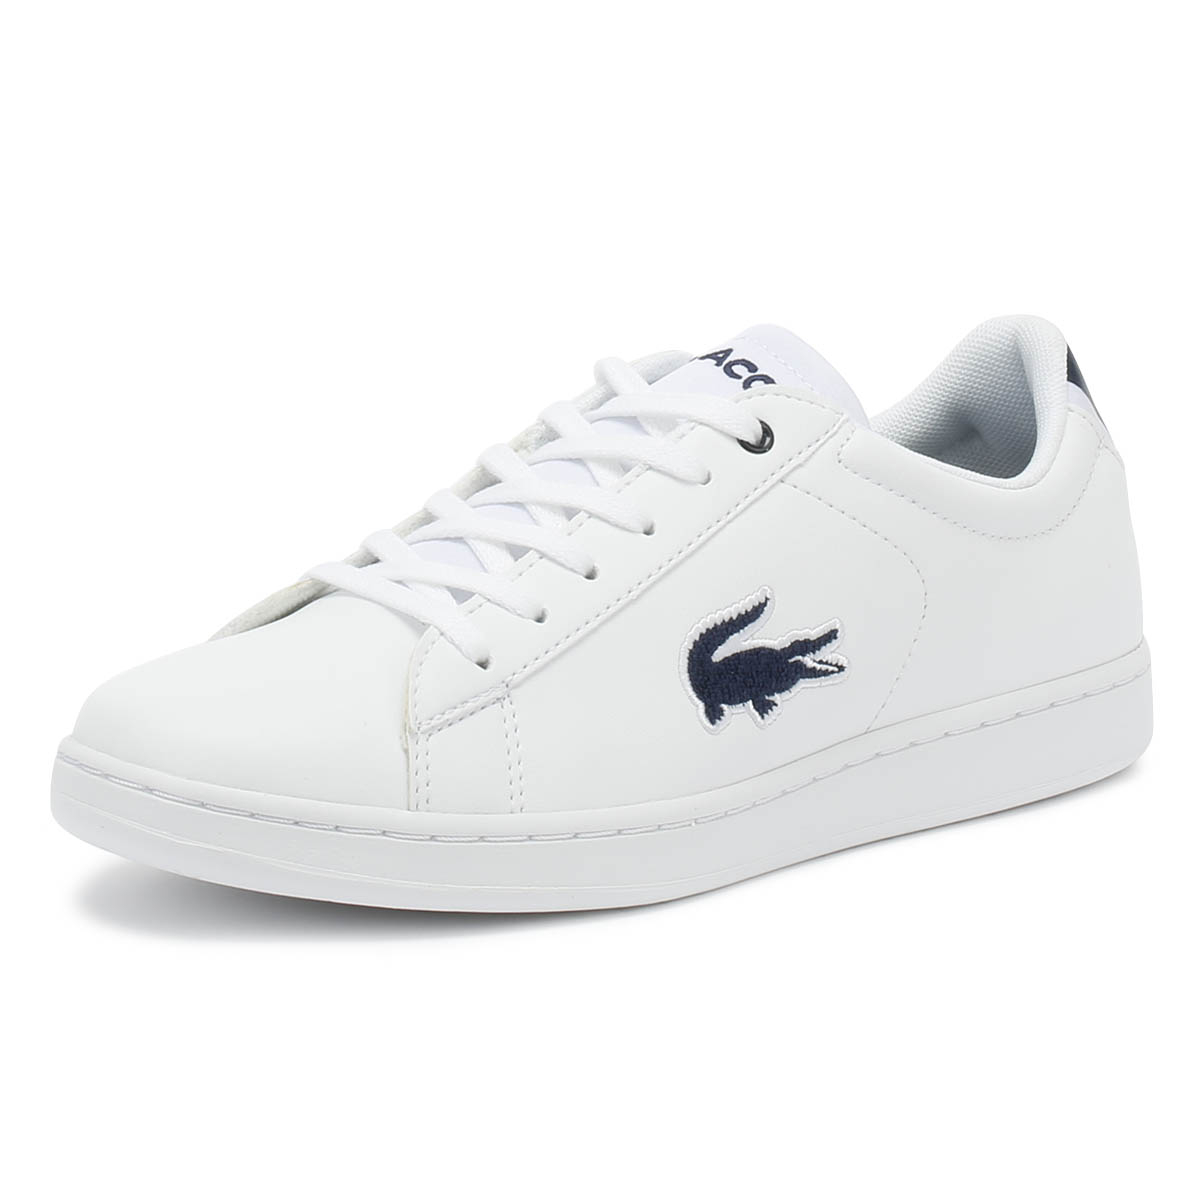 150e8bdd28e145 Details about Lacoste Carnaby EVO 318 1 Junior White   Navy Trainers Kids  Shoes